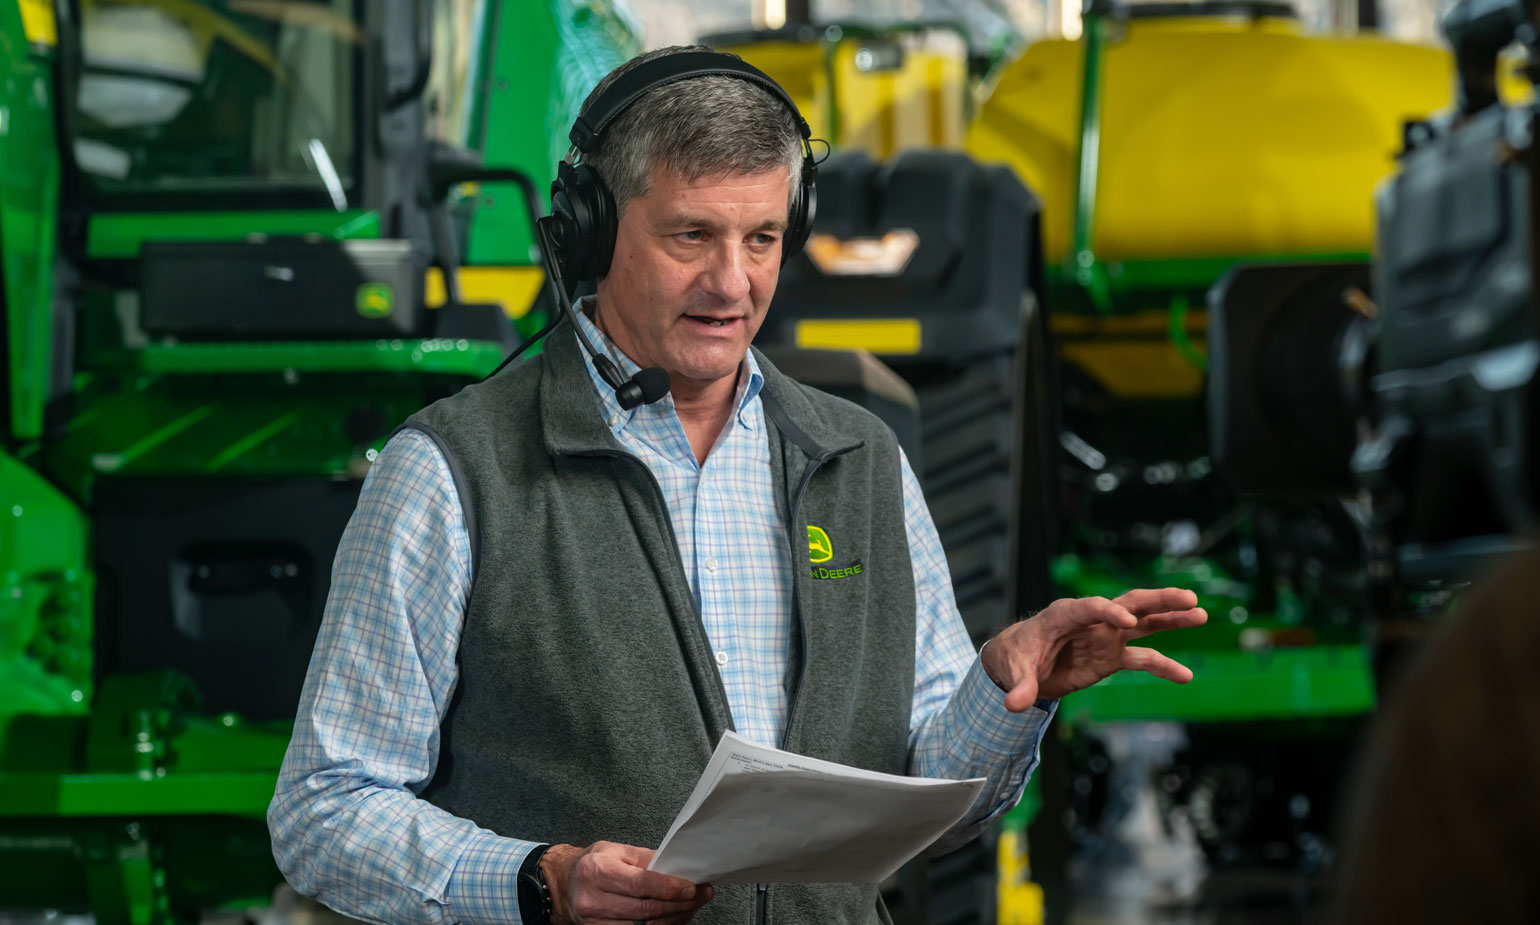 Lane Arthur, vice president, data, applications and analytics, John Deere, talked with Farm Progress